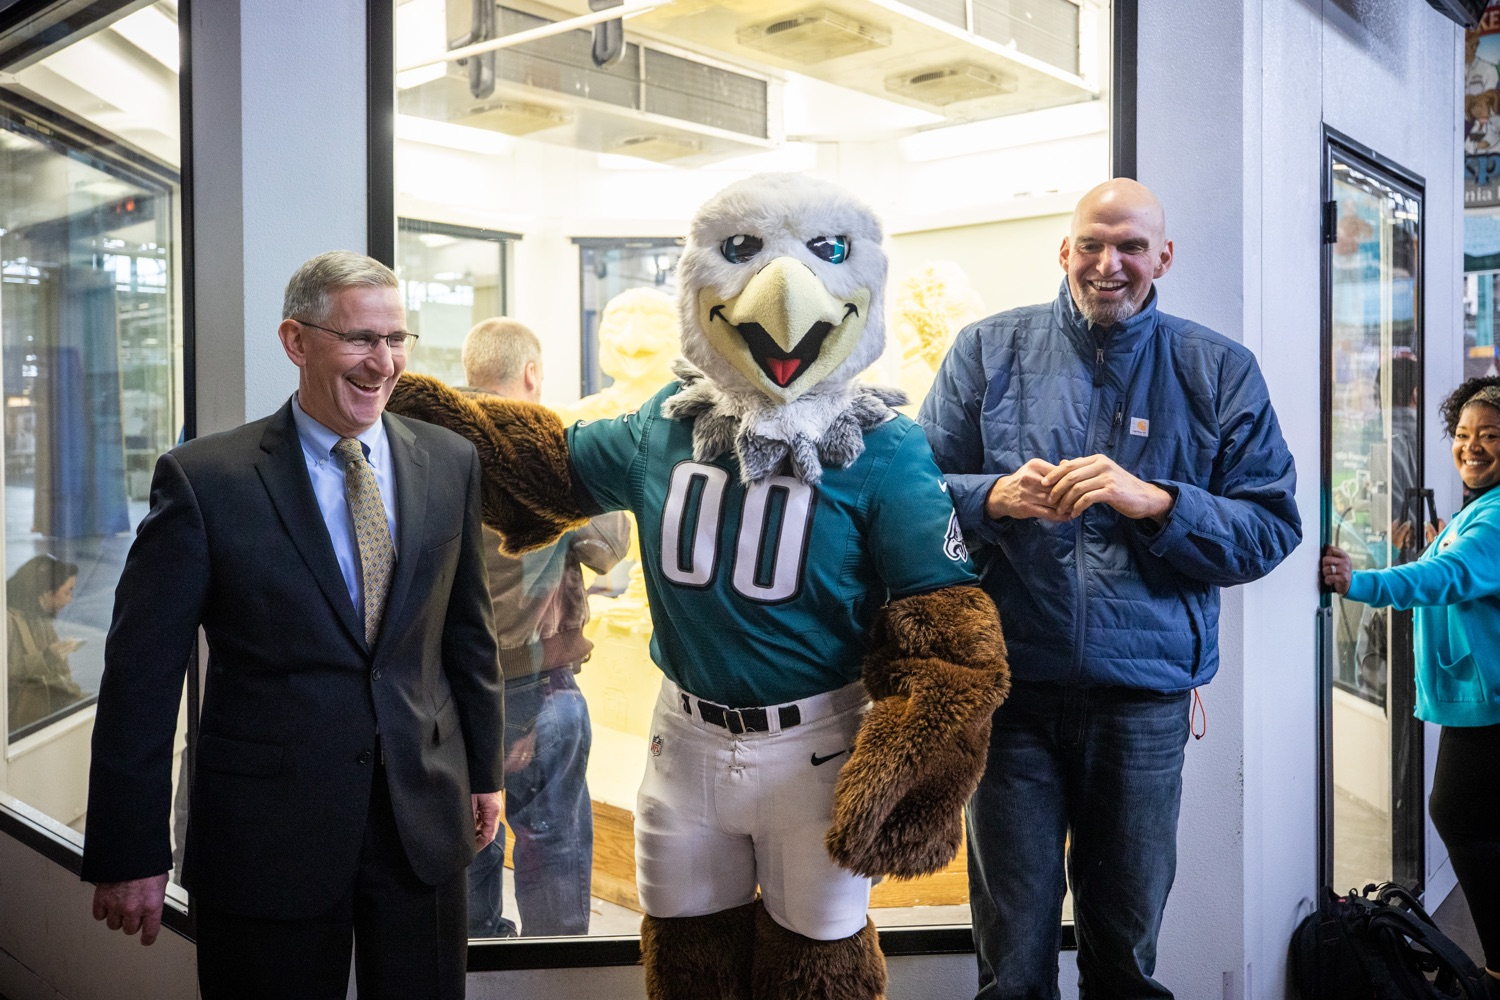 "<a href=""https://filesource.wostreaming.net/commonwealthofpa/photo/17646_agric_butter_sculpture_dz_022.jpg"" target=""_blank"">⇣ Download Photo<br></a>Philadelphia Eagles Swoop, Lt. Governor John Fetterman,  and Secretary of Agriculture Russell Redding at the Pennsylvania Farm Show butter sculpture.  Lt. Governor John Fetterman and Secretary of Agriculture Russell Redding today unveiled the 2020 Pennsylvania Farm Show butter sculpture, carved from a half-ton of butter depicting three of Pennsylvanias beloved professional sports mascots: Philadelphia Flyers Gritty, Philadelphia Eagles Swoop, and Pittsburgh Steelers Steely McBeam celebrating with a spread of Pennsylvania dairy products. The sculpture, a long-time Farm Show staple, encourages Pennsylvanians to be a fan of Pennsylvania dairy and give a cheer to the more than 6,200 dairy farmers in the commonwealth.  Harrisburg, PA  January 2, 2020"